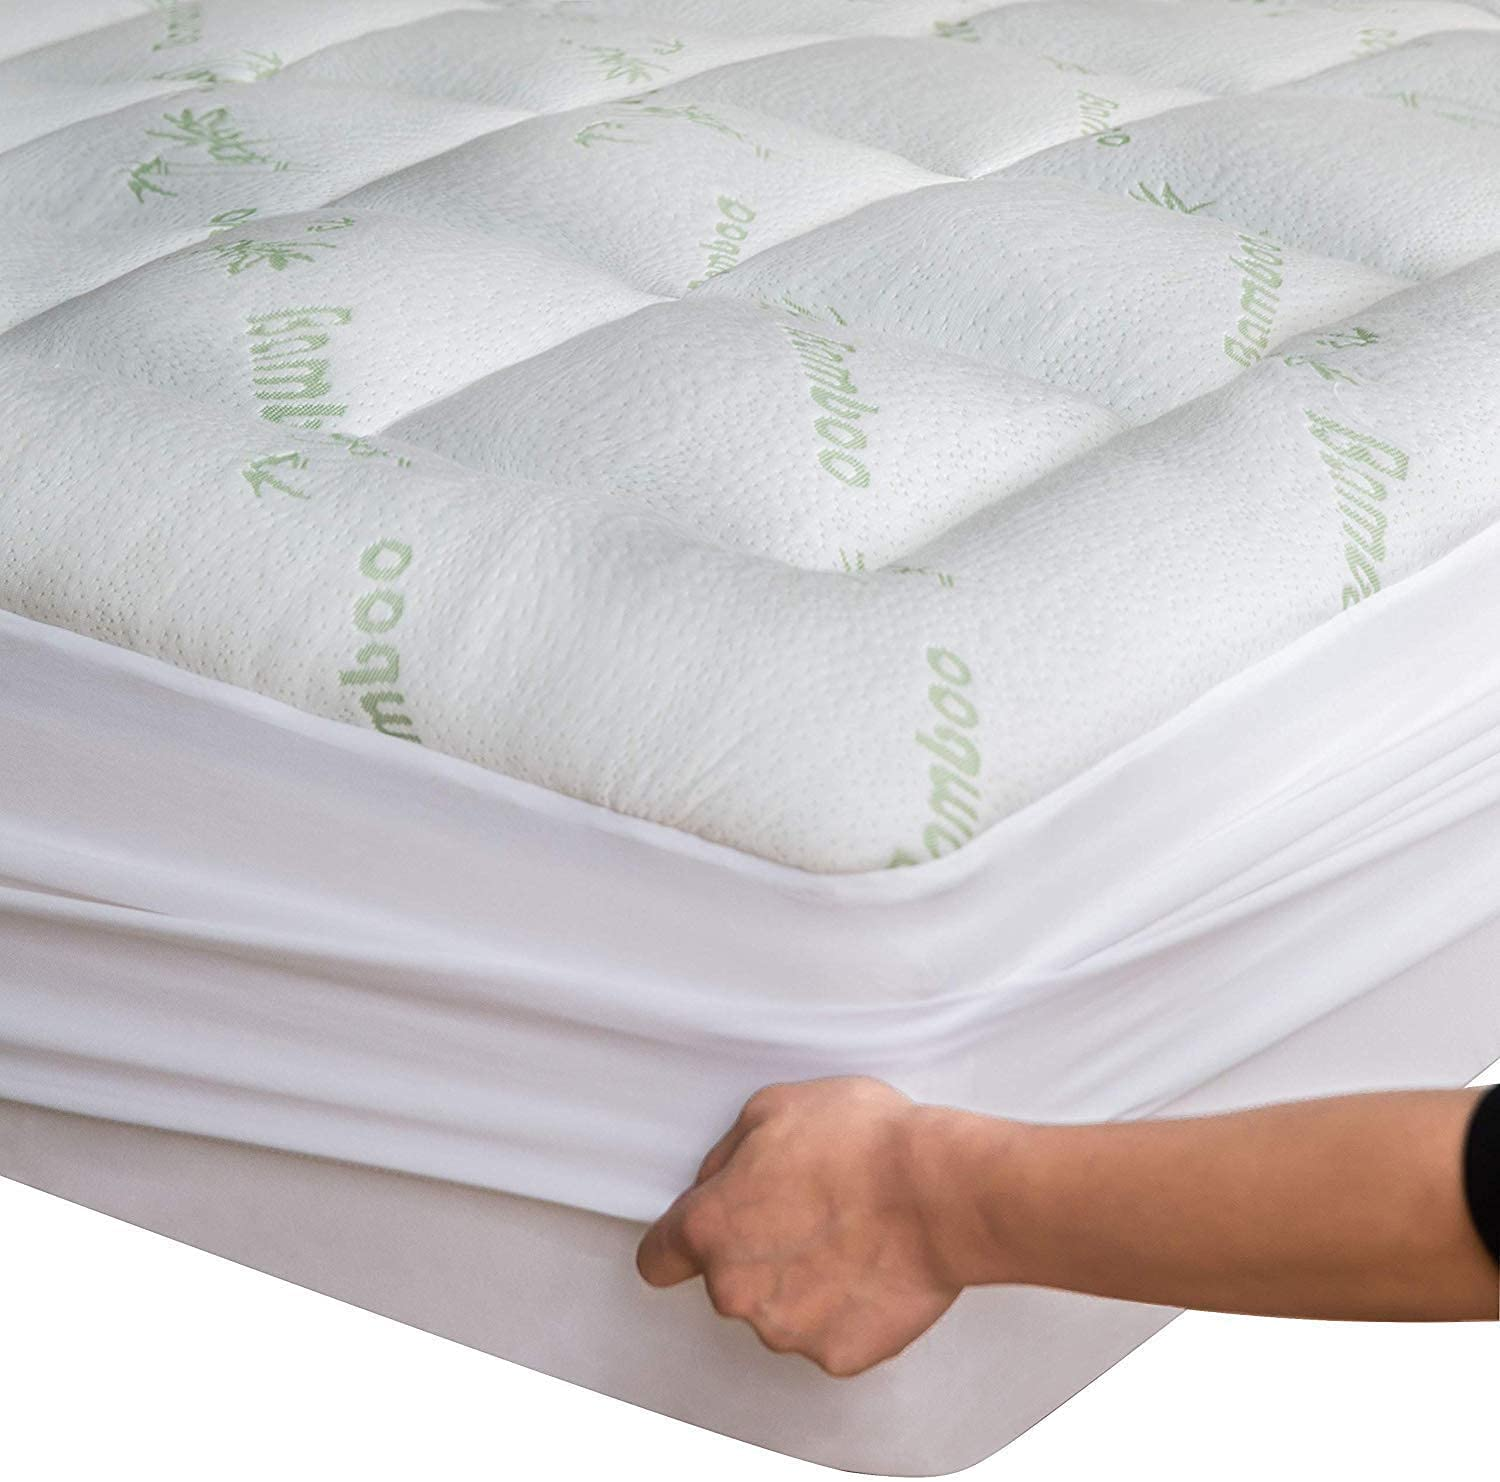 Bamboo Mattress Topper Full XL Breathabl Limited time cheap New Free Shipping sale Cooling inches 54X80X15